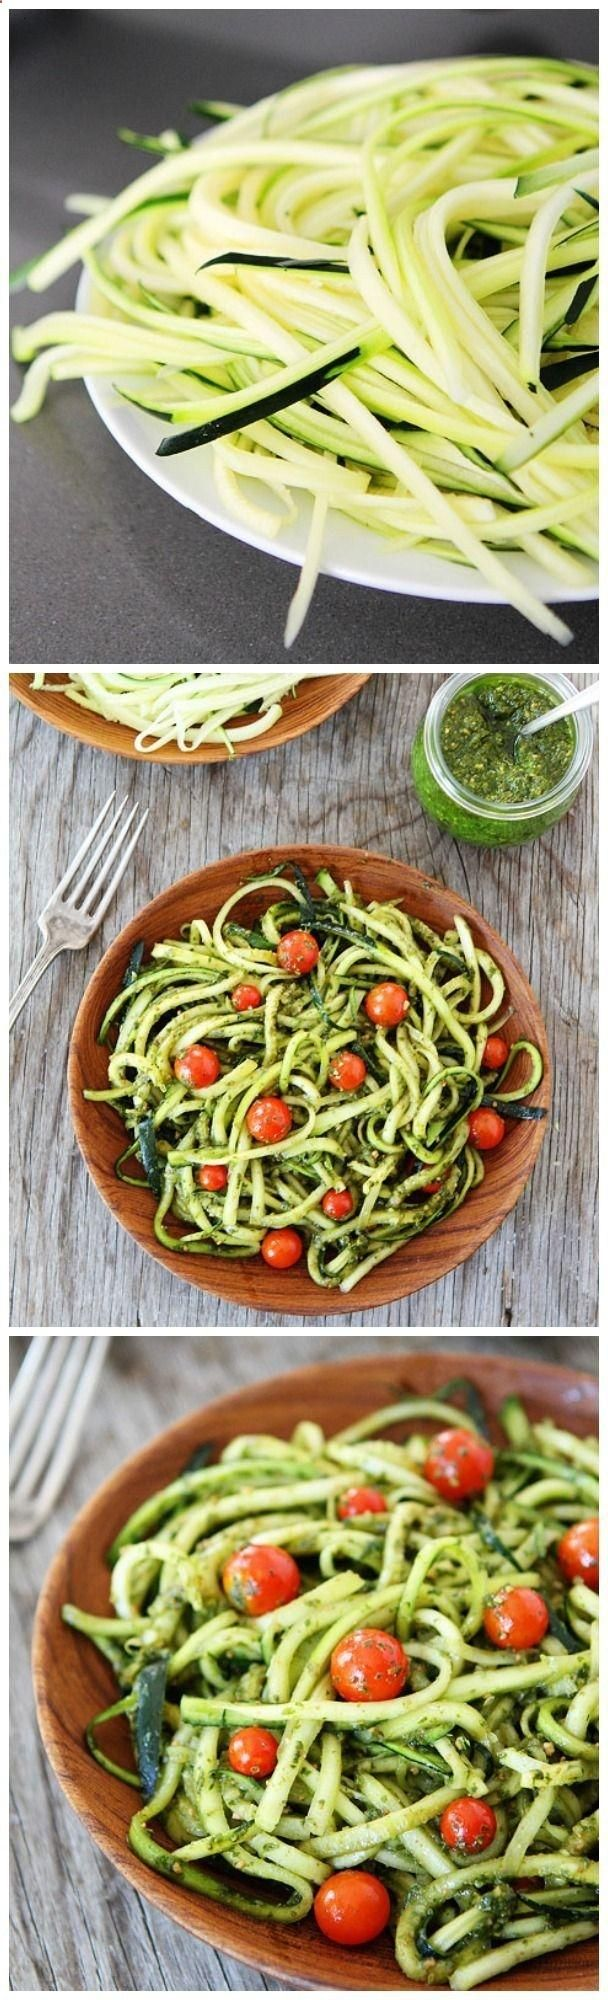 Zucchini Noodles with Pesto - add garlic, onion, salt, and pepper. Top w cherry tomatoes